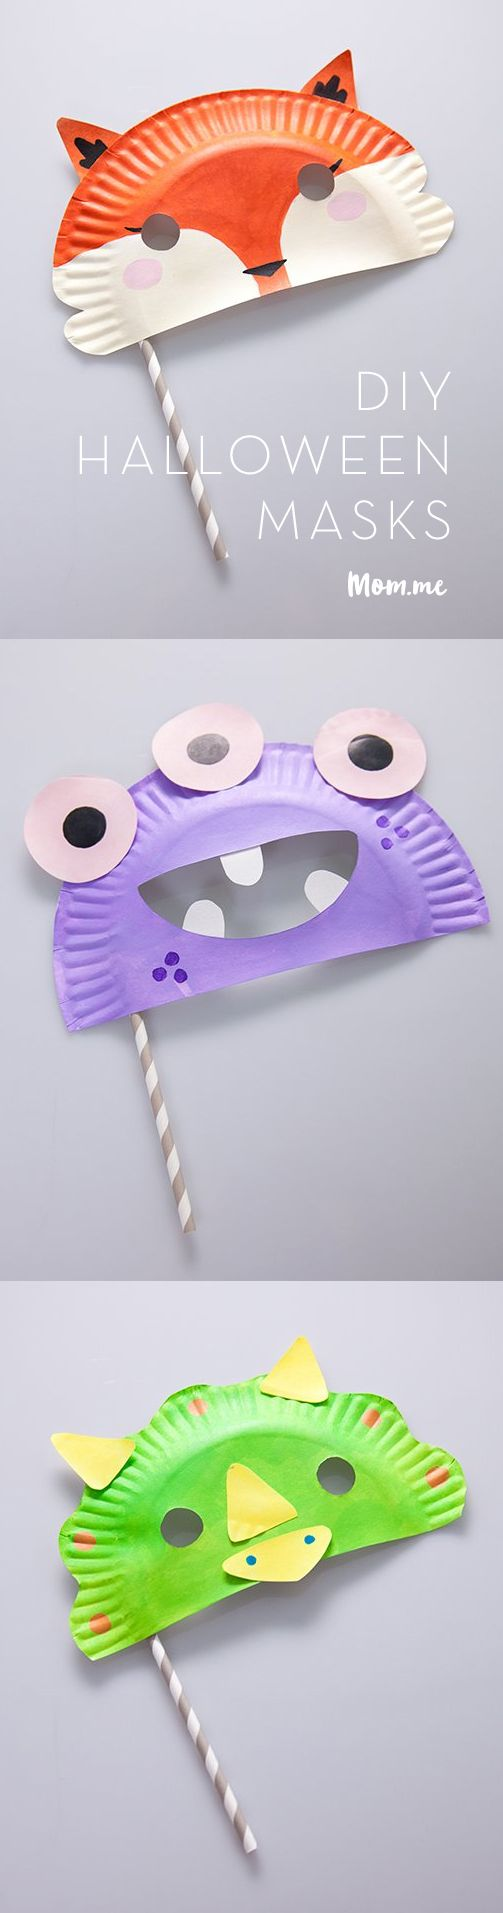 This Halloween, make things frightfully easy with our DIY kid-friendly masks.